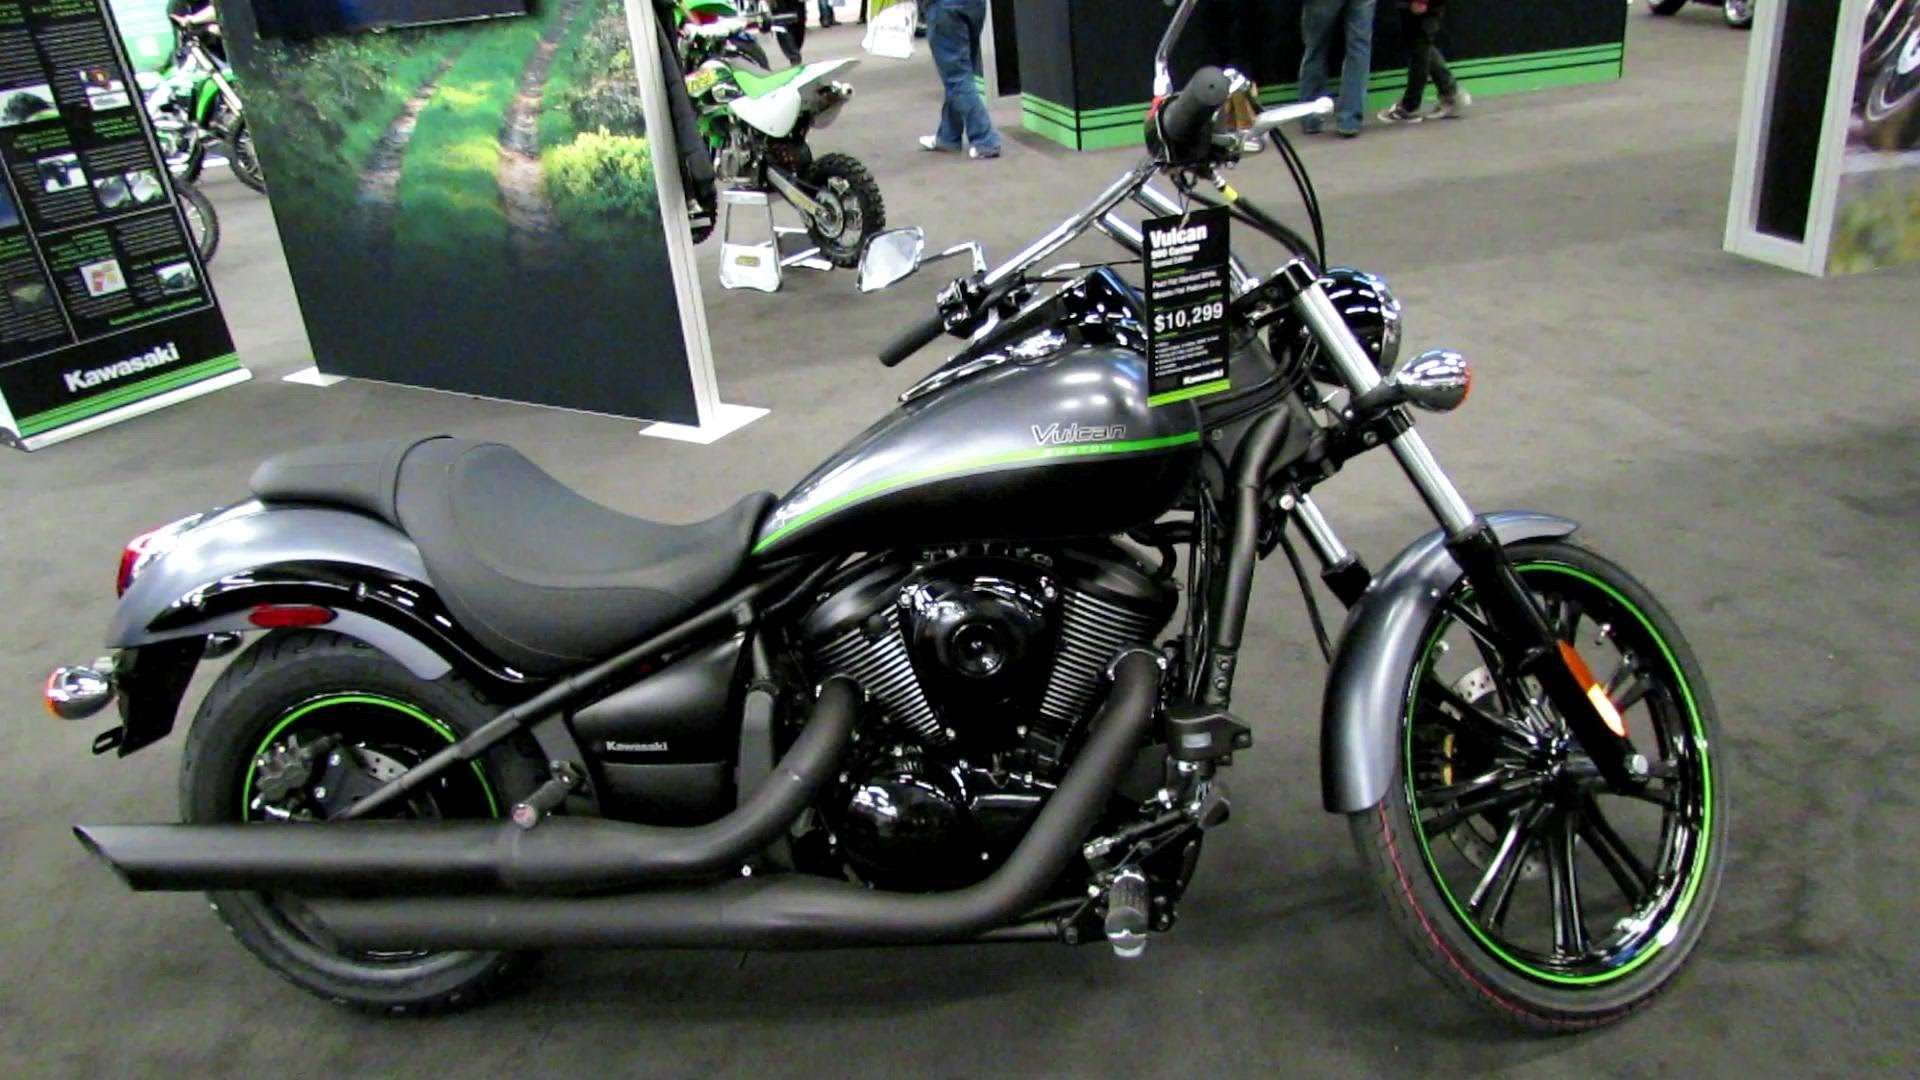 2013 kawasaki vn 900 custom pics specs and information. Black Bedroom Furniture Sets. Home Design Ideas